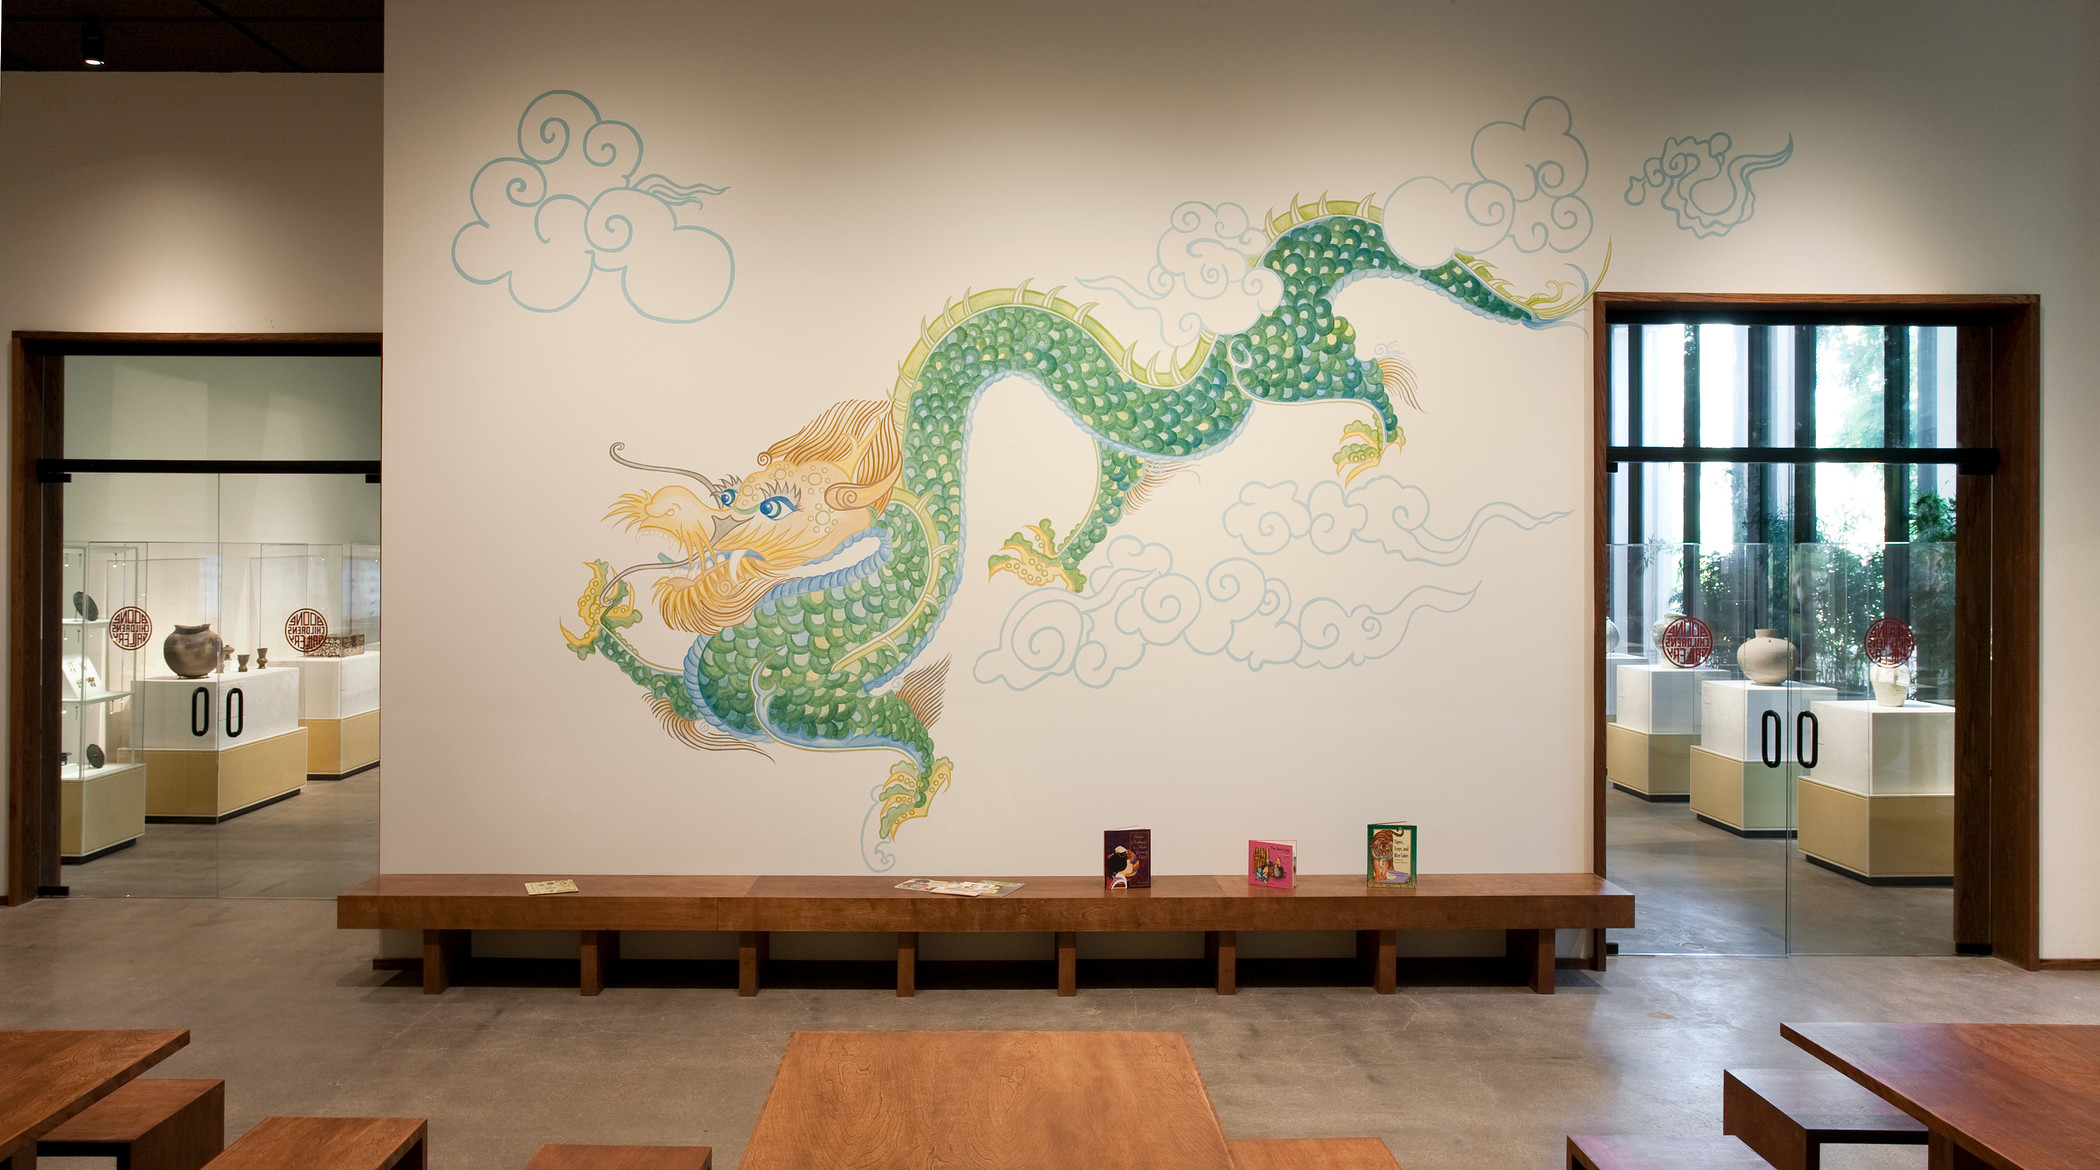 Sid the Dragon in the Boone Children's Gallery at the Los Angeles County Museum of Art, photo © Museum Associates/LACMA